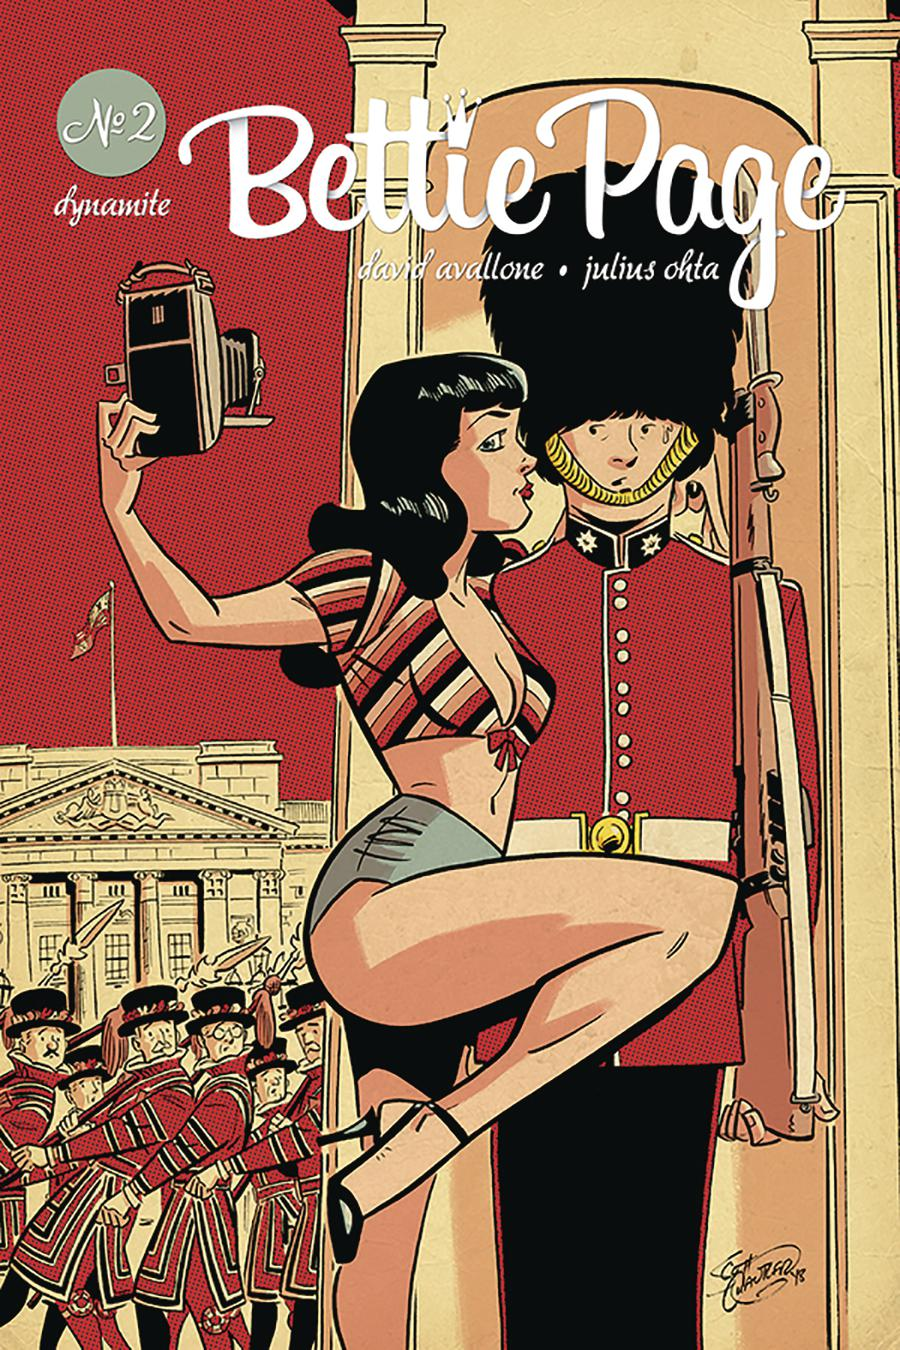 Bettie Page Vol 2 #2 Cover B Variant Scott Chantler Cover